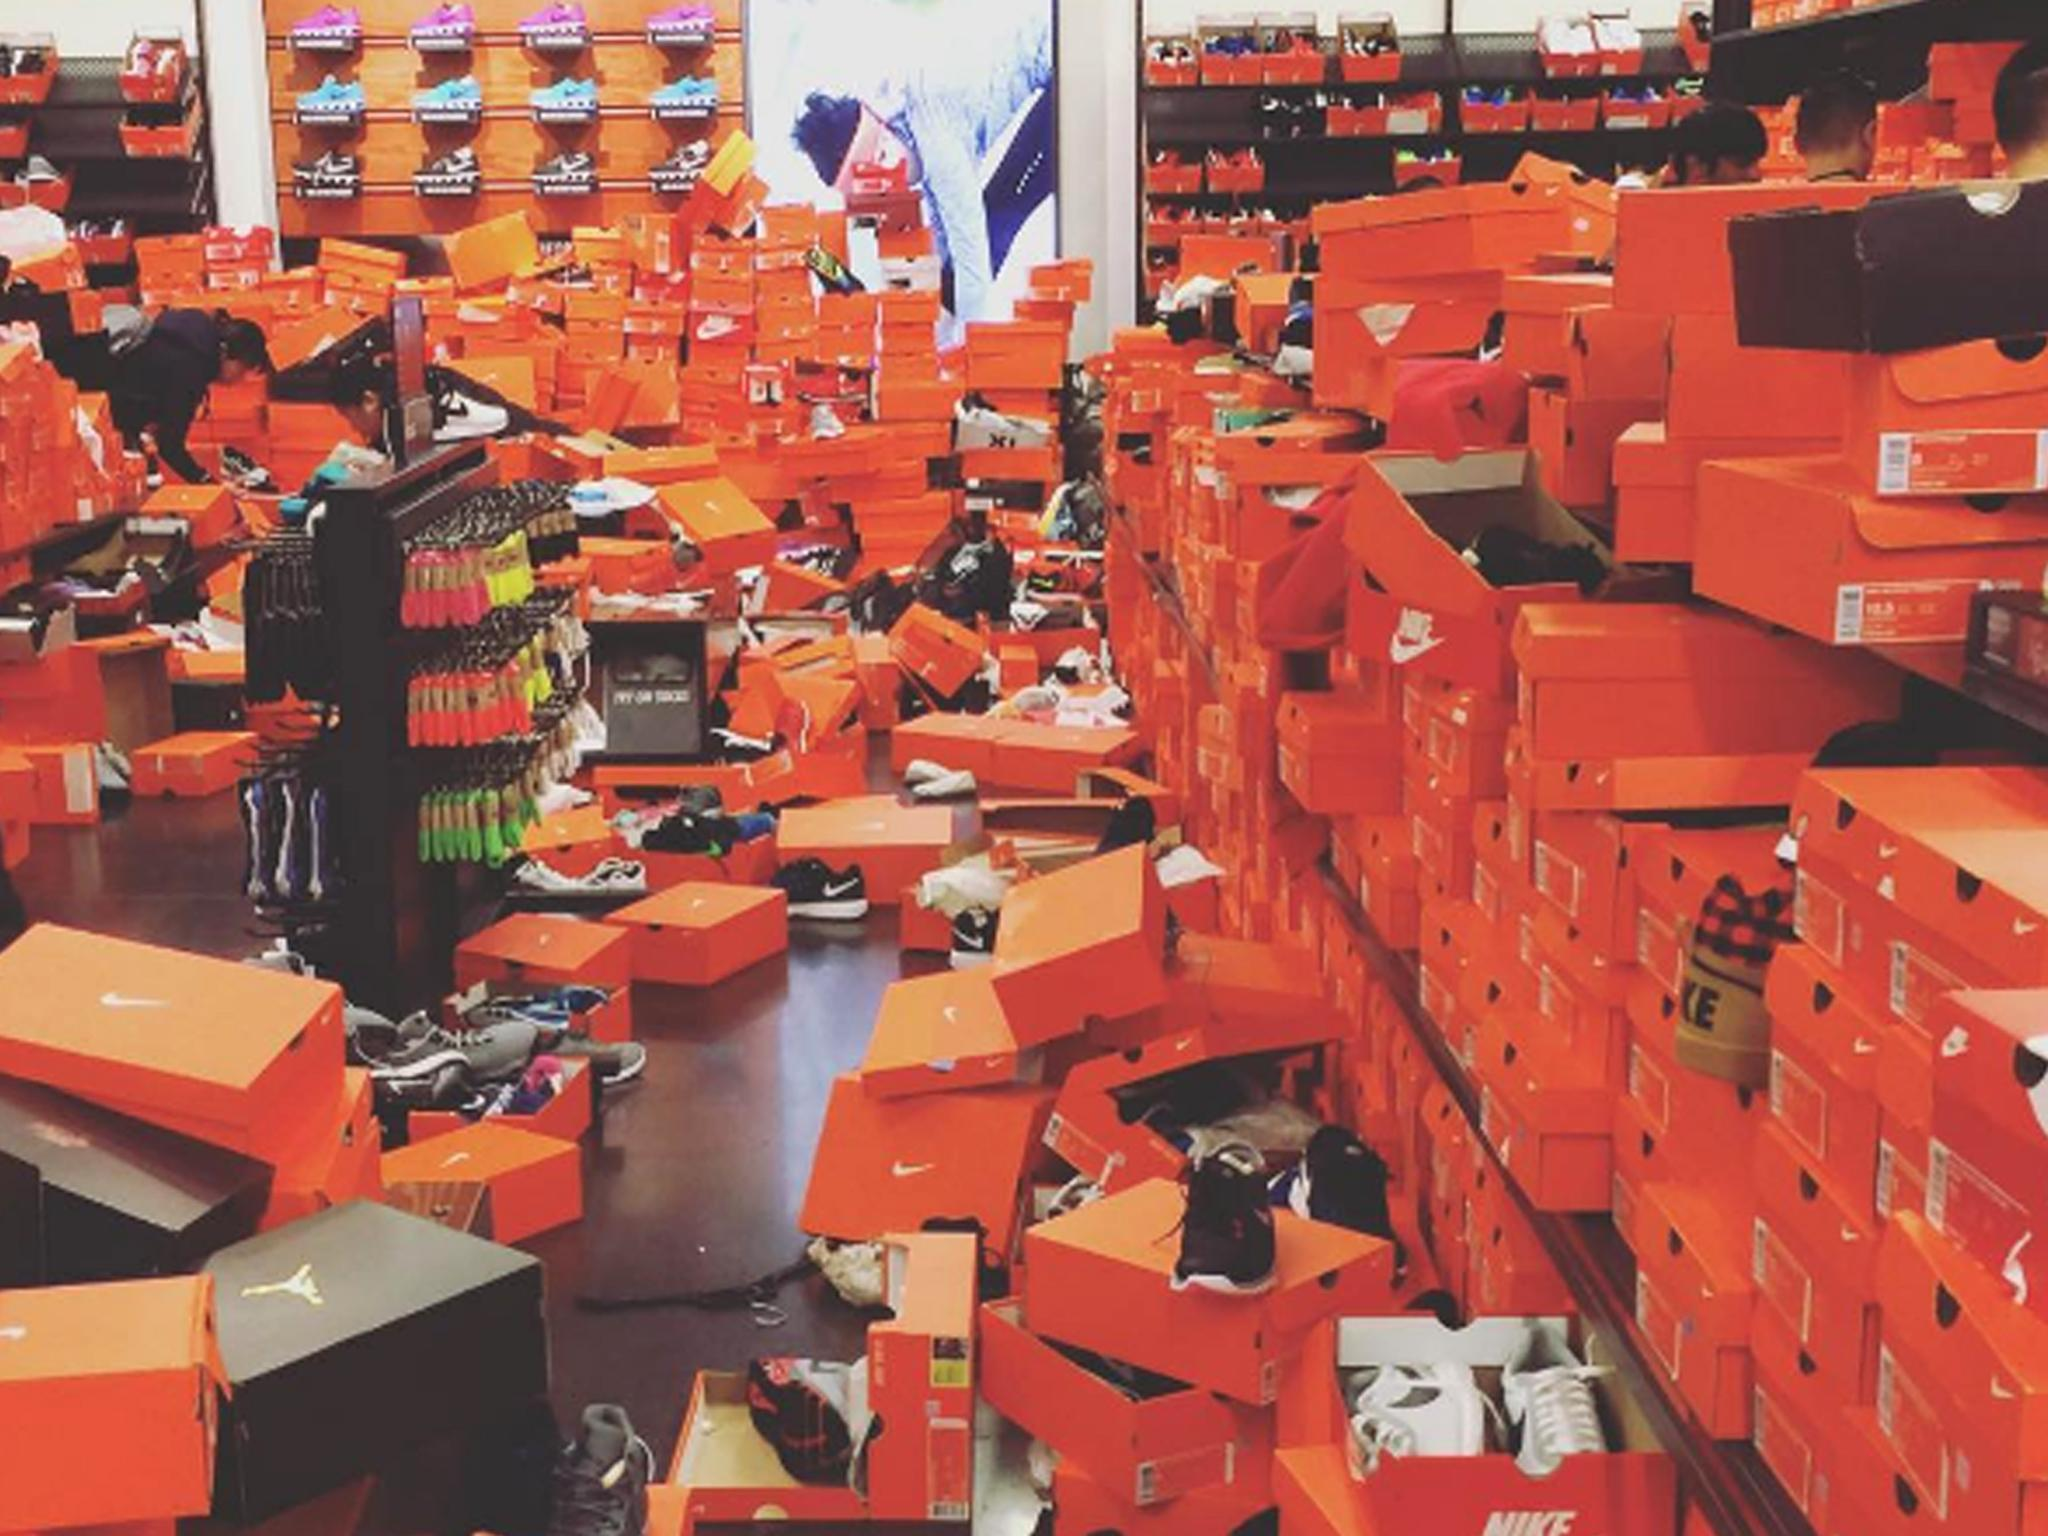 Nike store wrecked after Black Friday chaos | The Independent